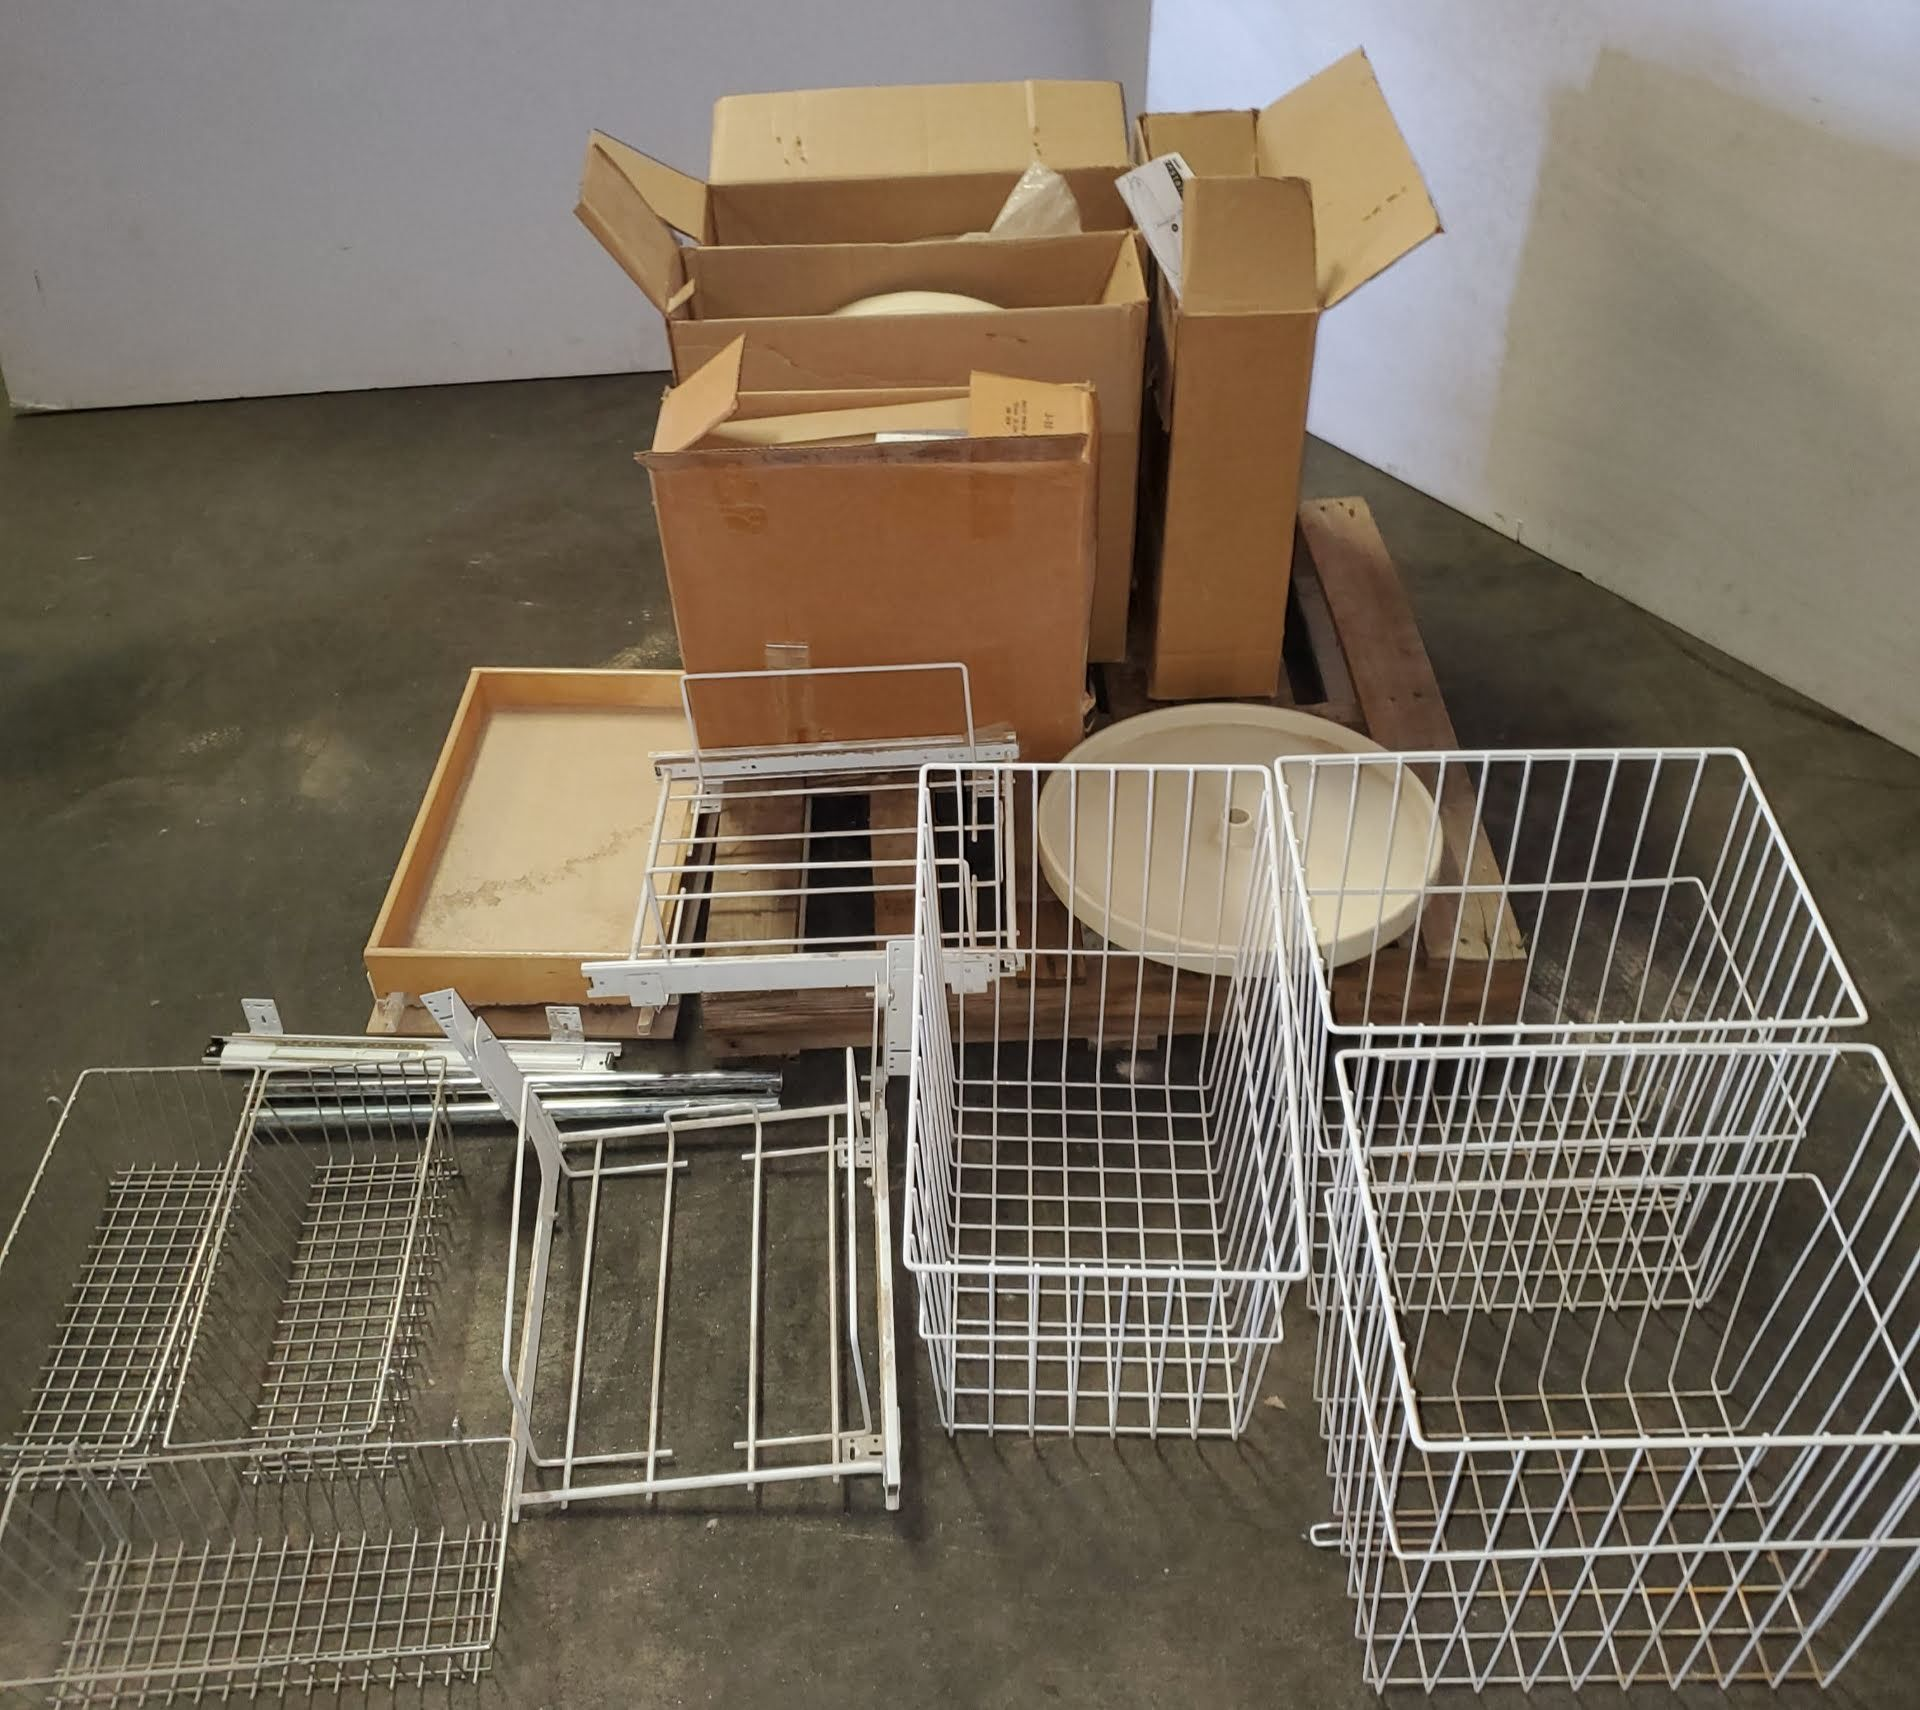 Lot 41 - Pallet of Misc. Lazy Susans & Wire Baskets for kichen cabinets